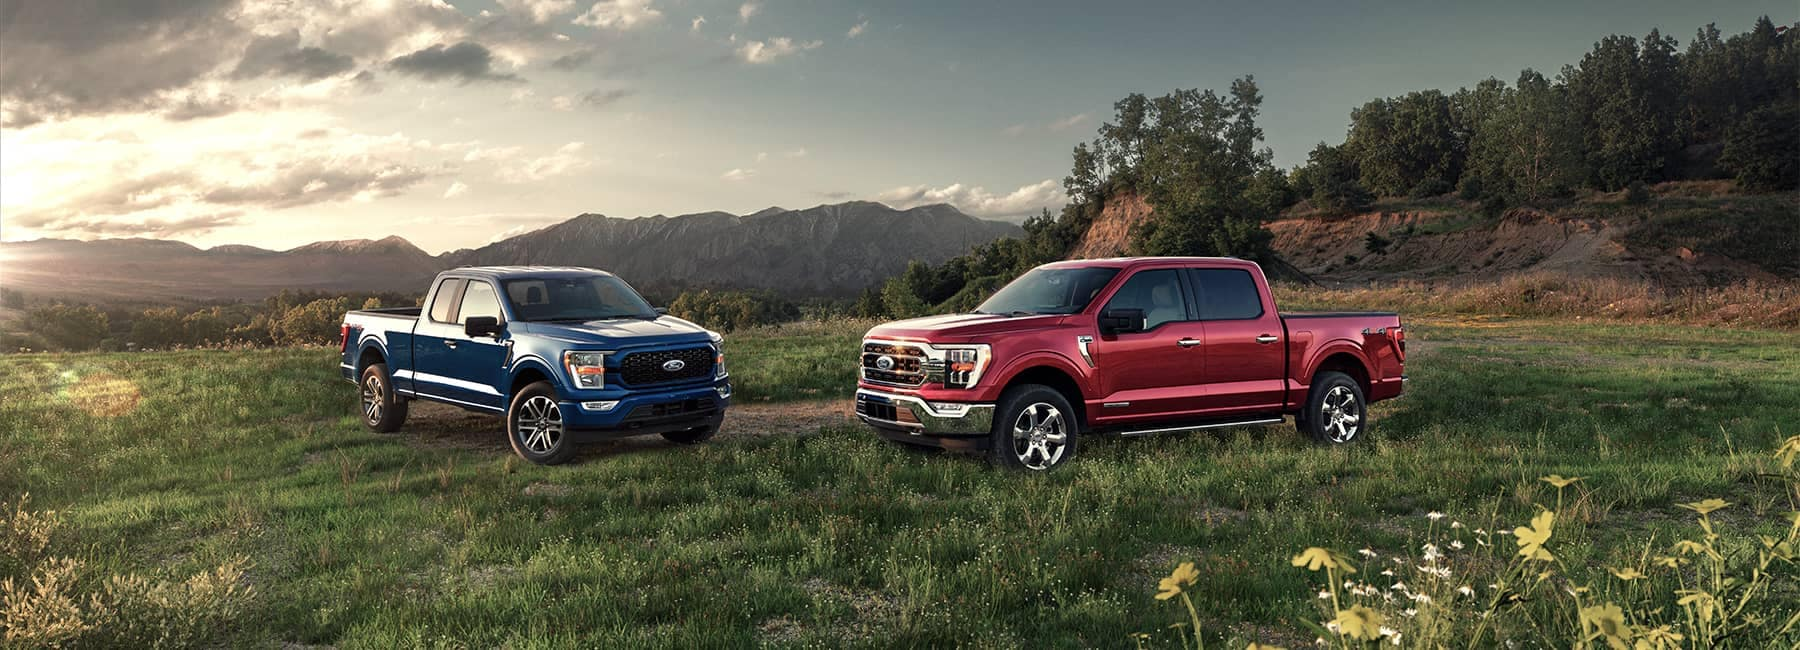 Two 2021 Ford F150 trucks in a mountain valley